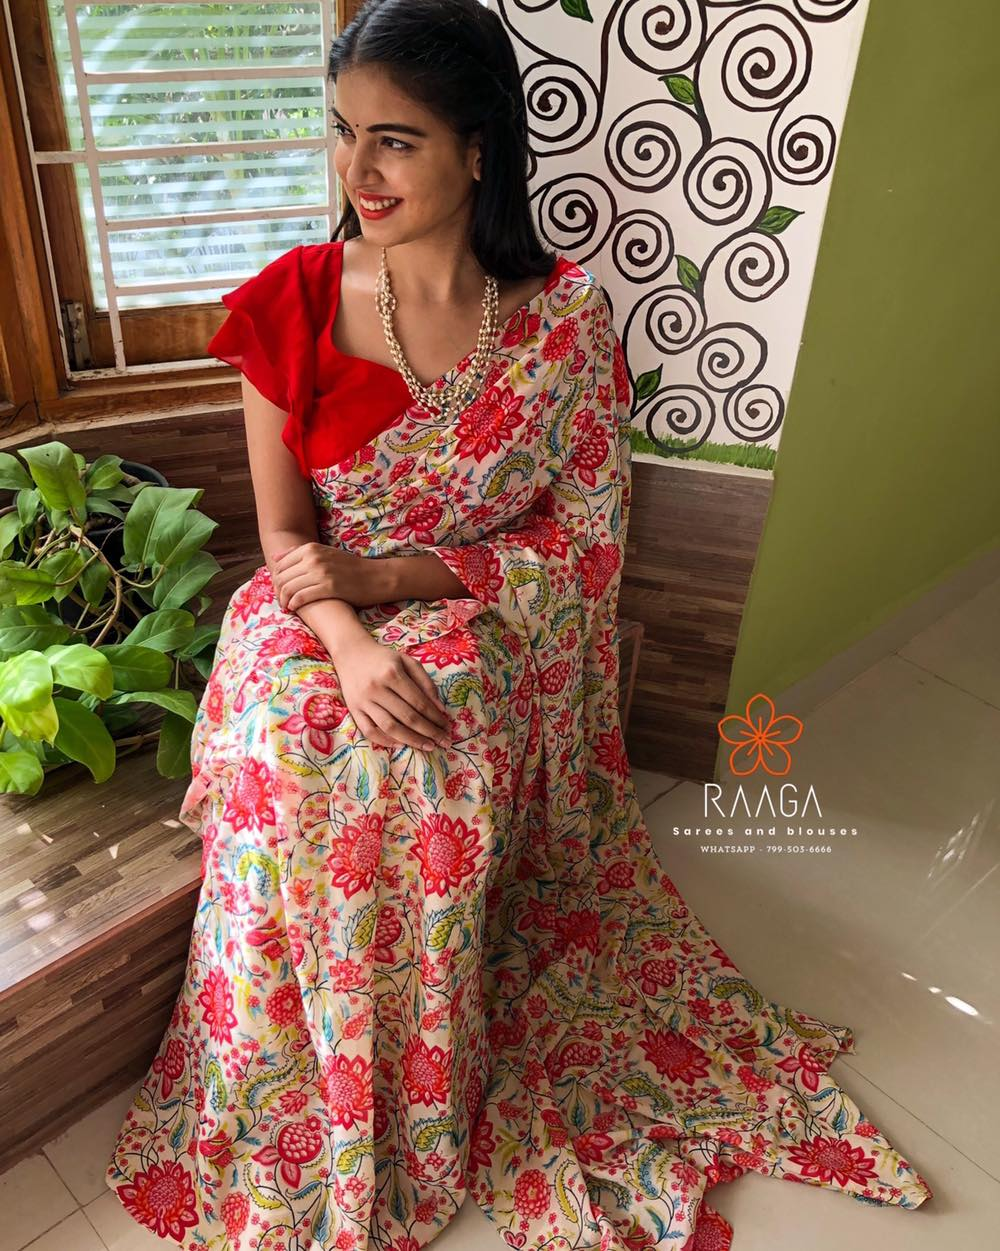 VALENTINE !  Don't miss out this eye catching floral crape saree extremely comfortable and easy to wear paired up with chilli red crape blouse .  . . Price of the saree Only (Printed pure crape) - 3300 INR  Price of the blouse material(pure crape unstitched) - 500 INR  Blouse stitching  Fall and pico can be done at additional cost.  . . For placing orders  Kindly whatsapp  at 7995036666 (RAAGA - A unit of YELLOW ) . 2021-04-05